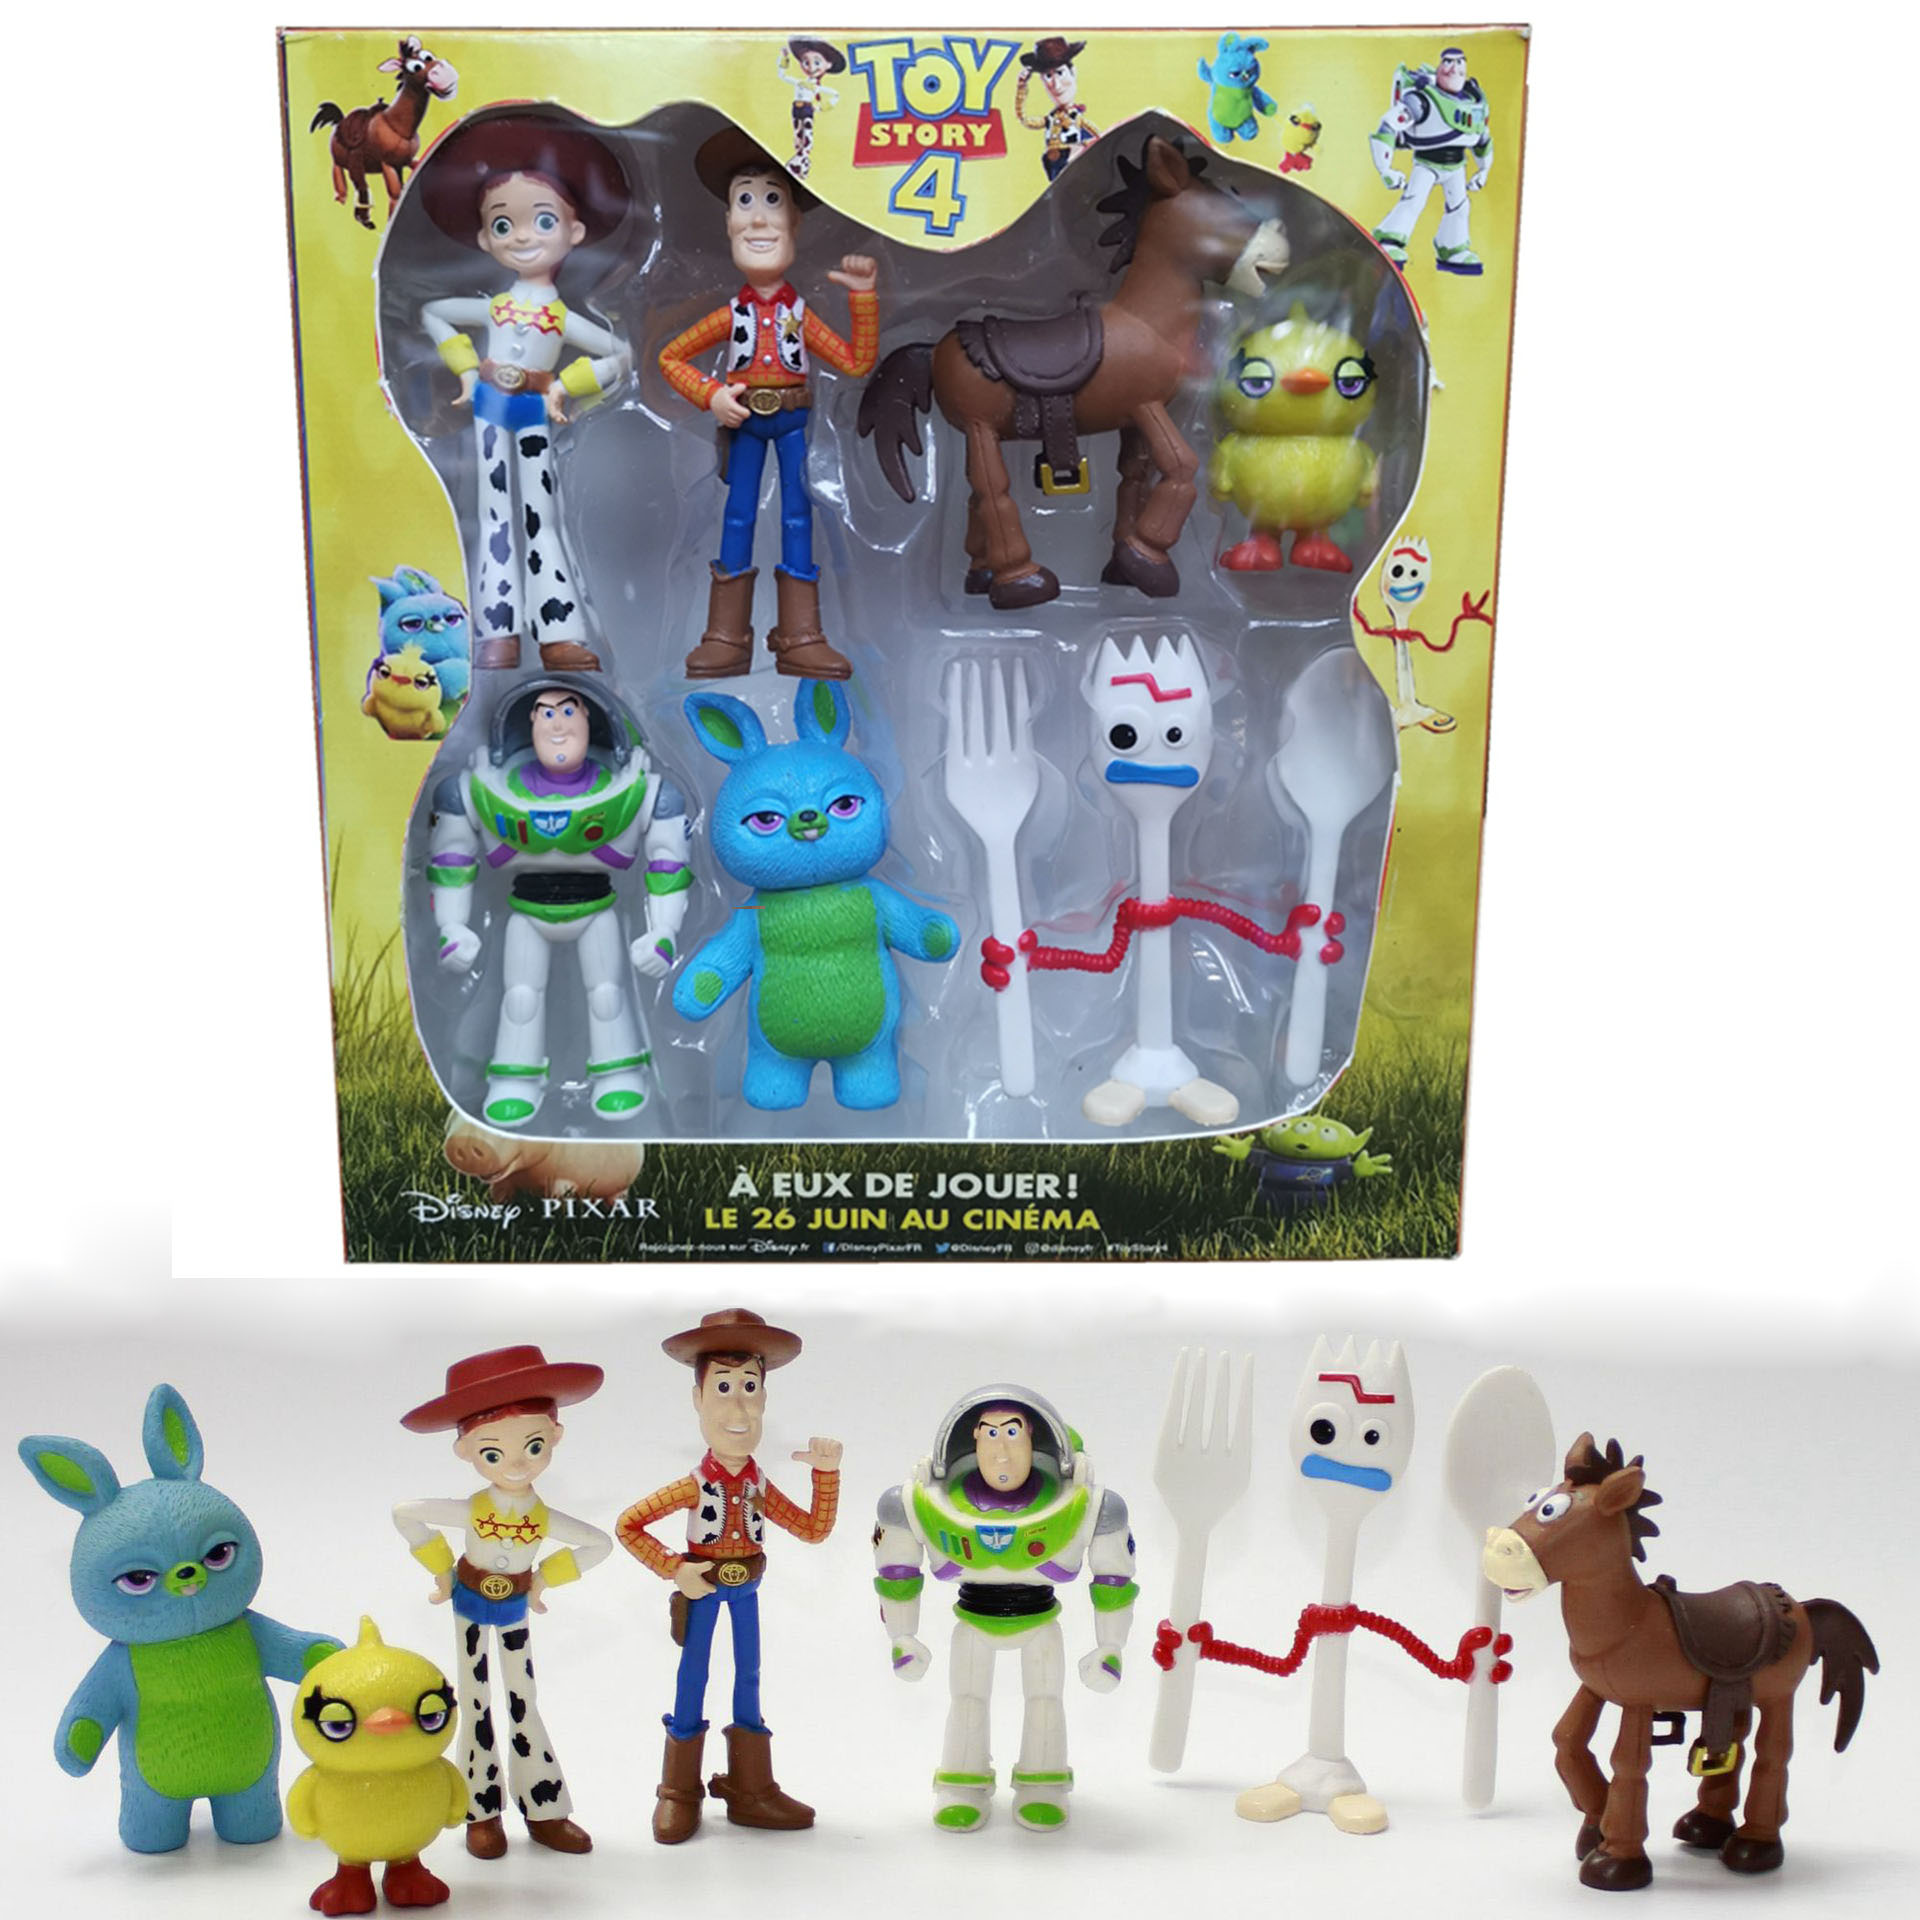 Topper-Toys Toy-Story Birthday-Gift Jessie Lightyear Woody Buzz Bunny Anime 4-Forky Cake